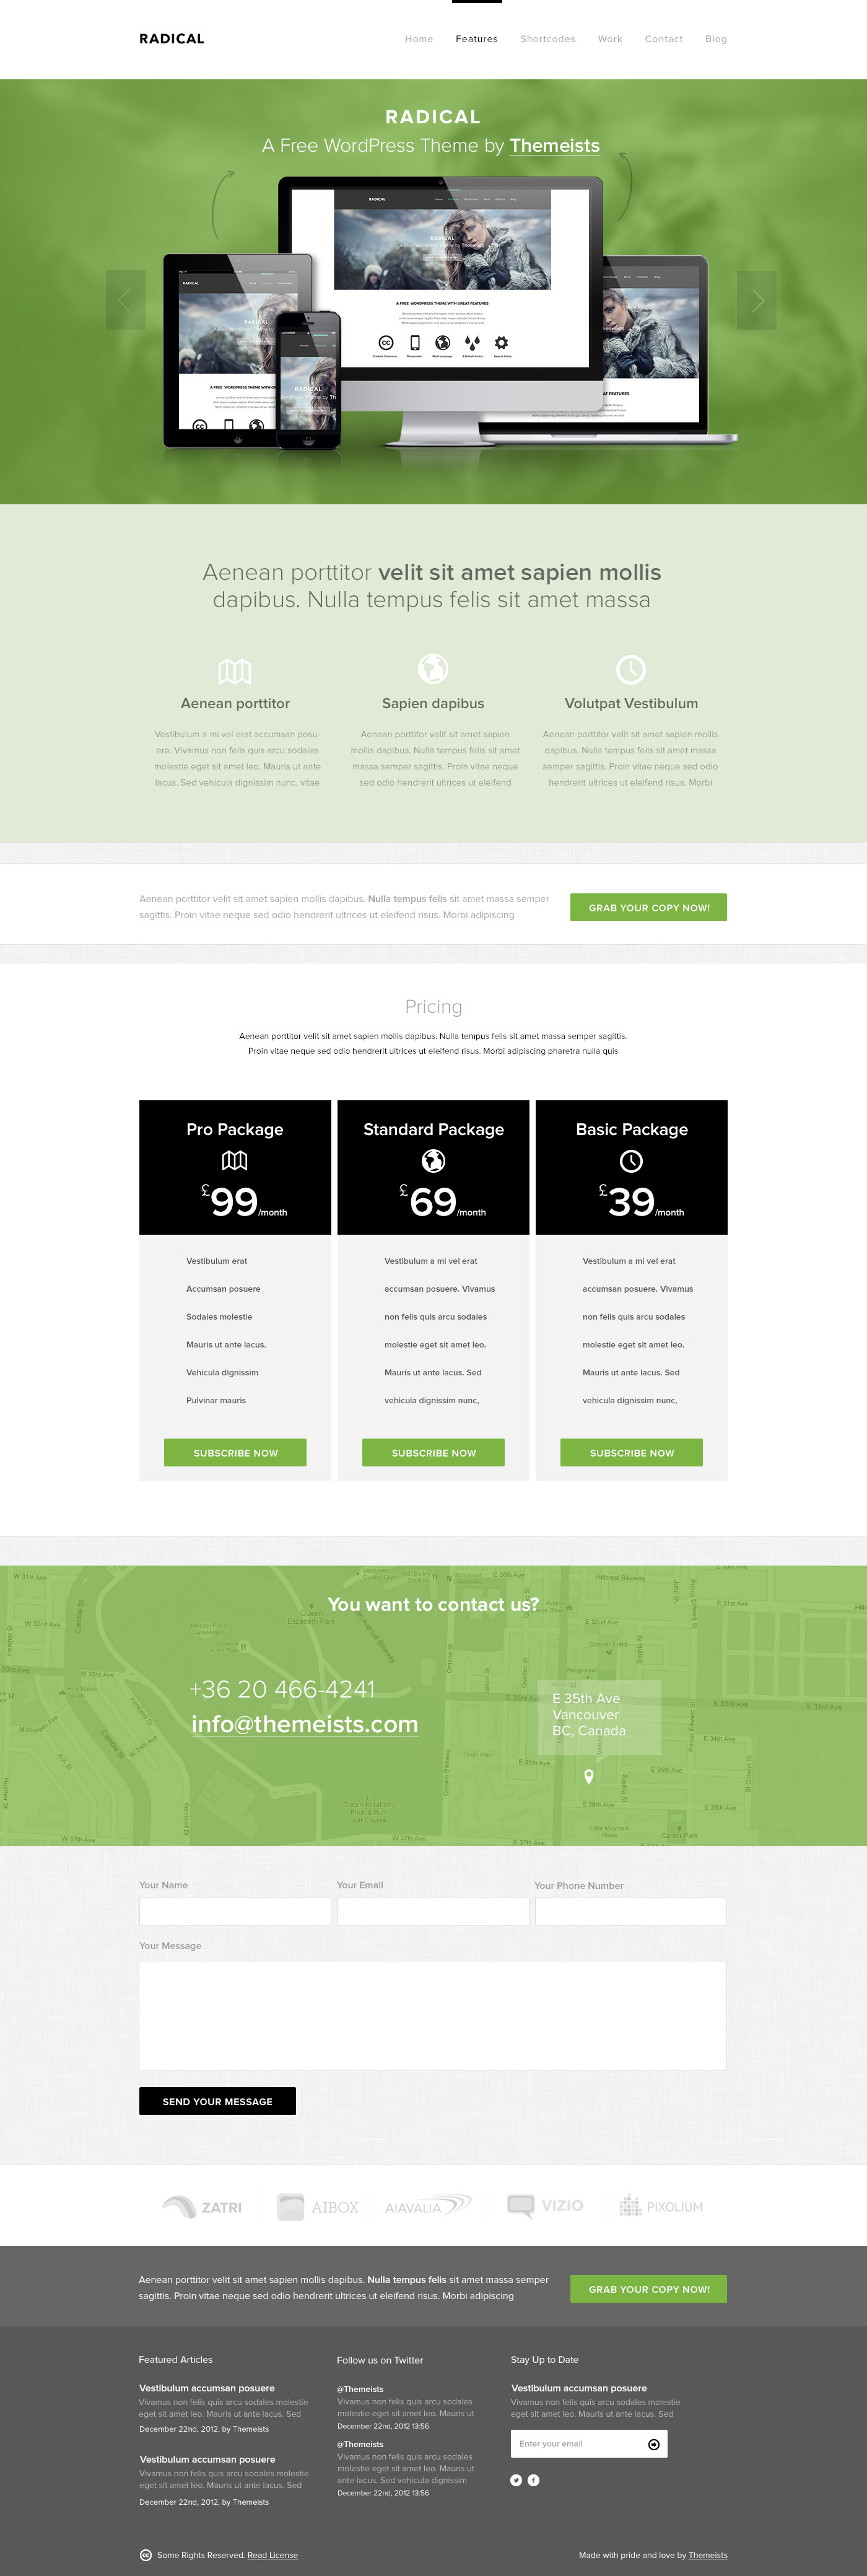 Radical - Single Page PSD Template